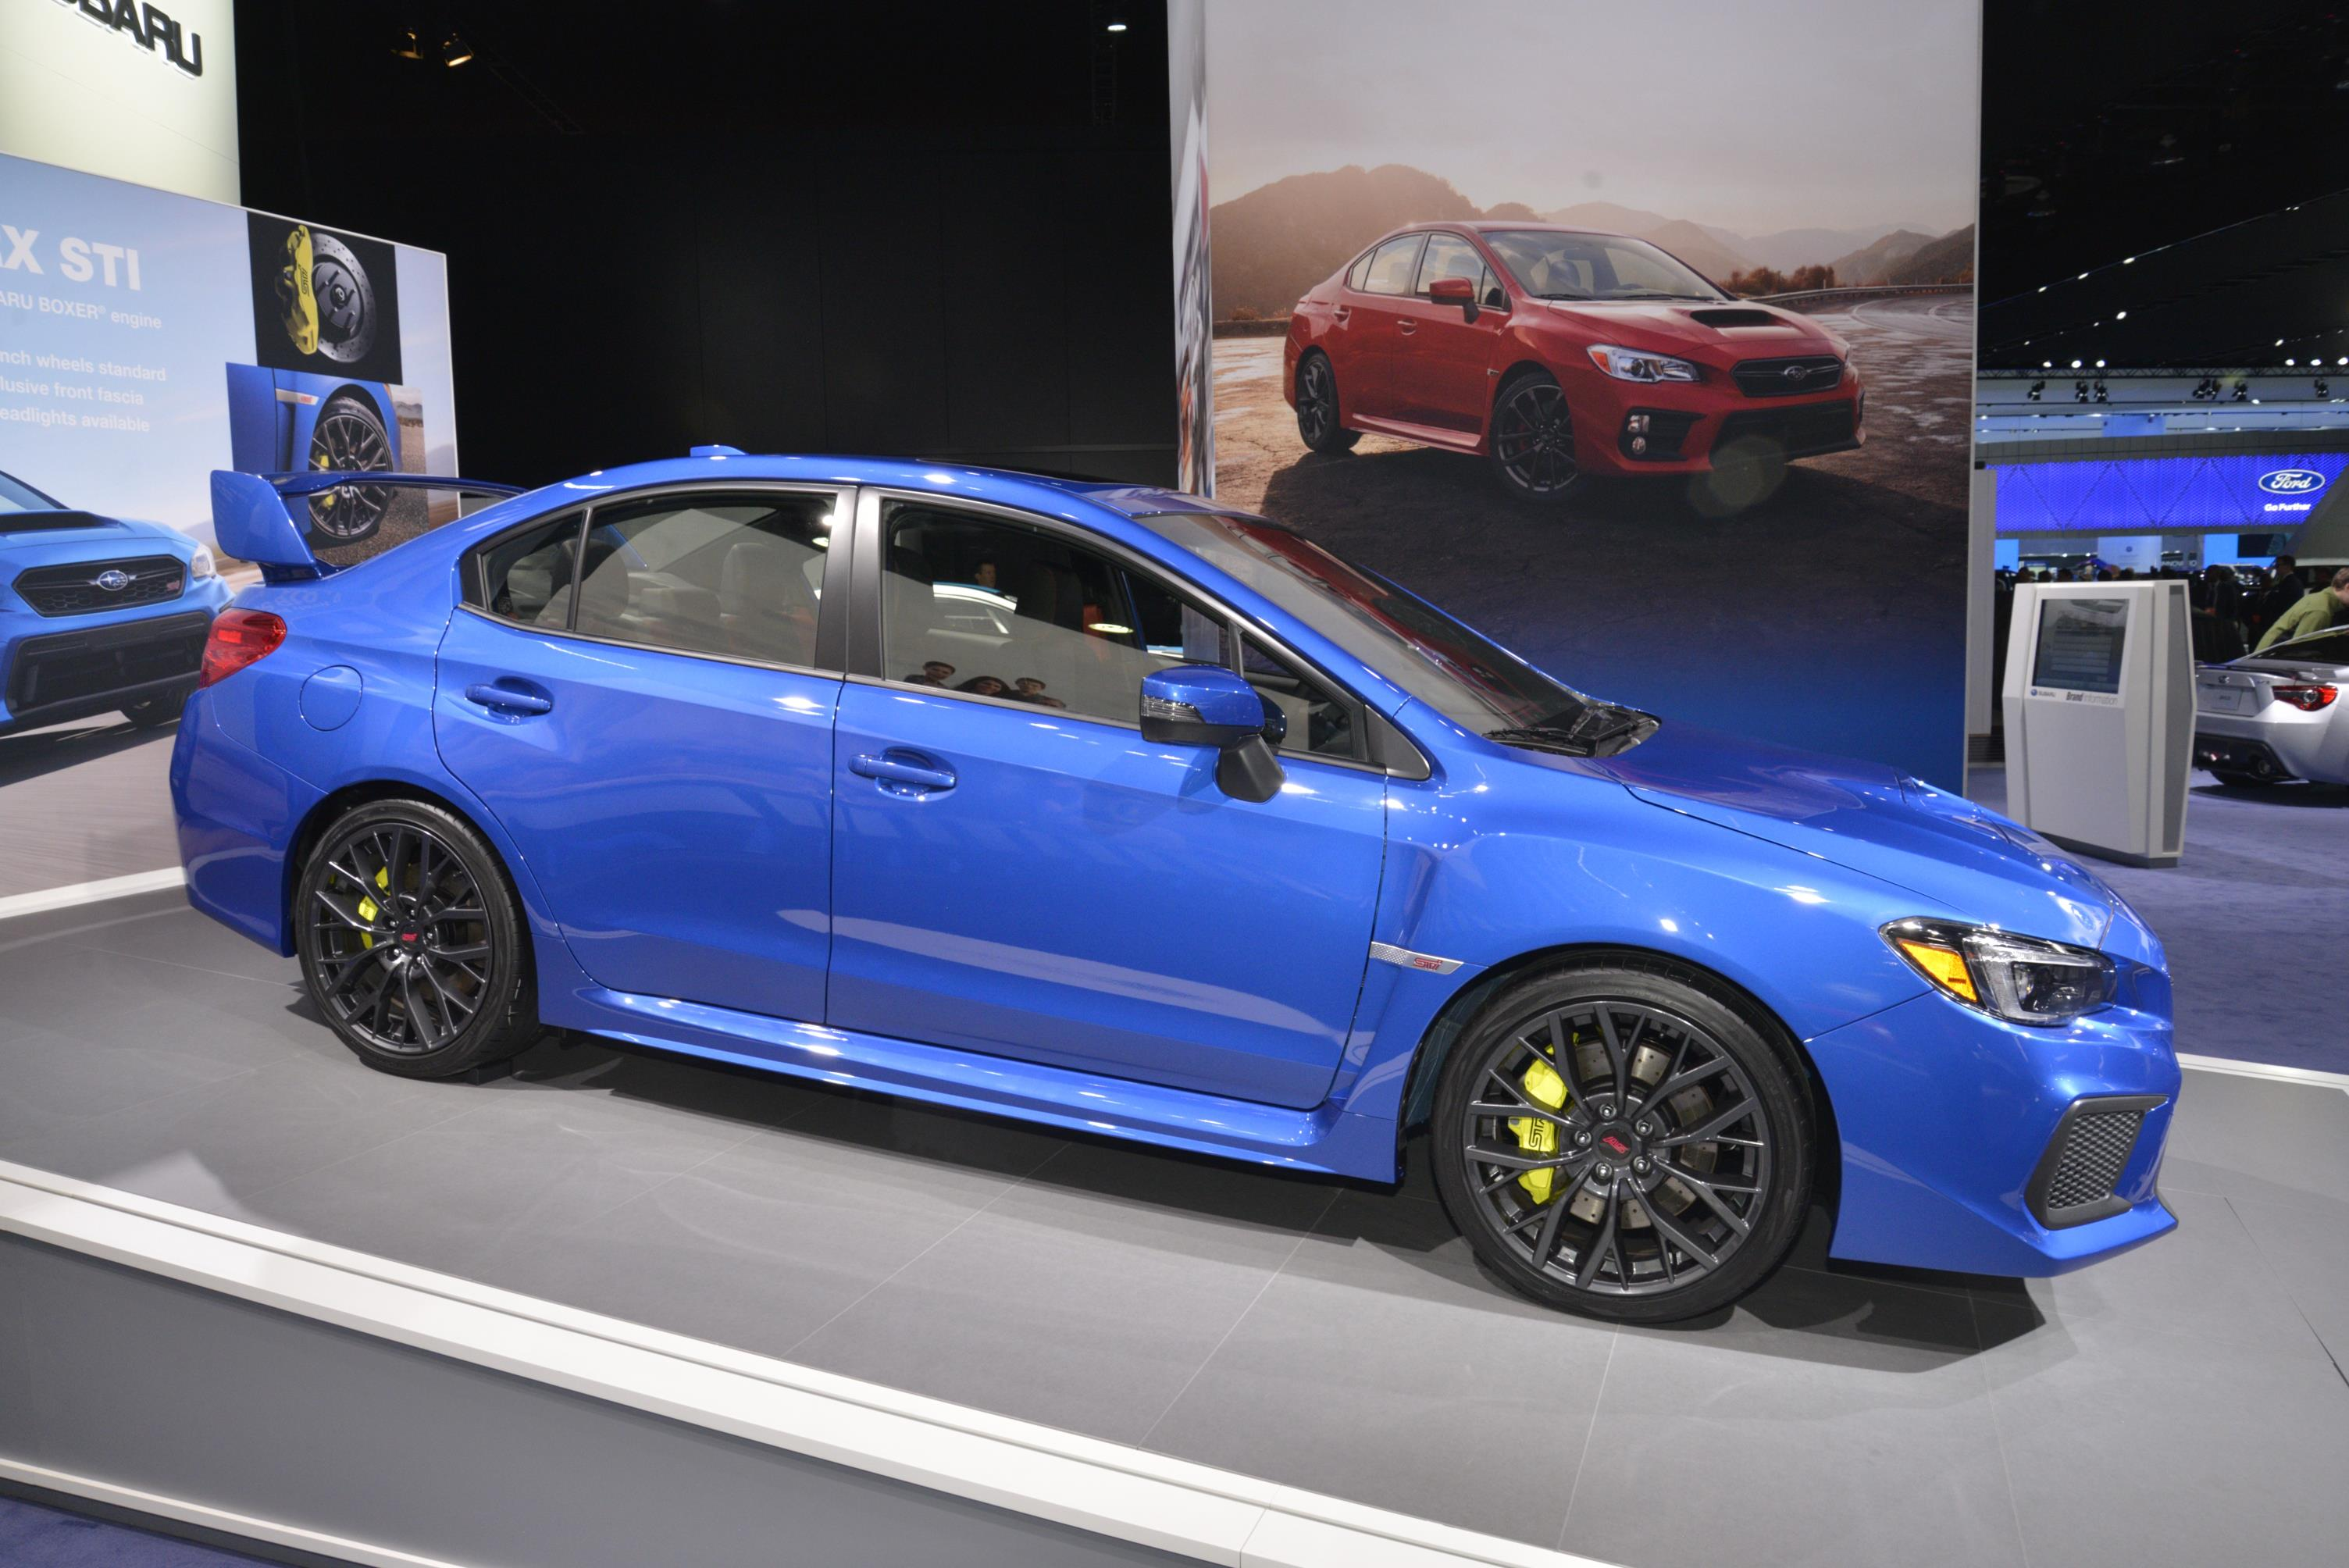 2018 Subaru WRX and STI Get Price Bump - autoevolution